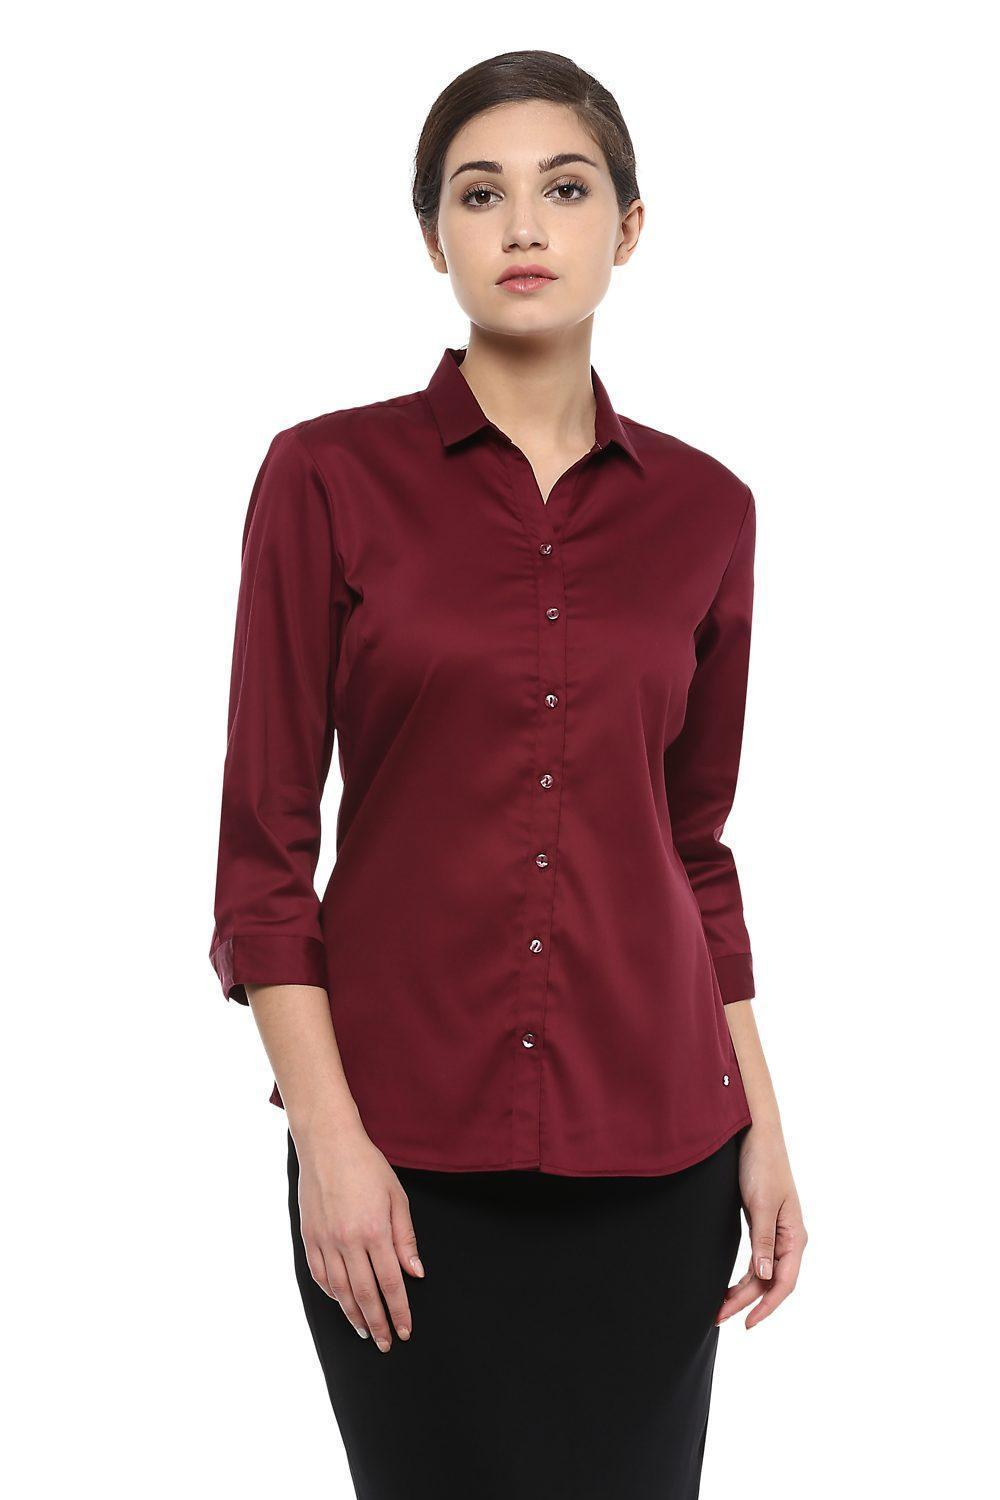 8a49f81b2ac896 Solly Shirts & Blouses, Allen Solly Maroon Shirt for Women at Allensolly.com